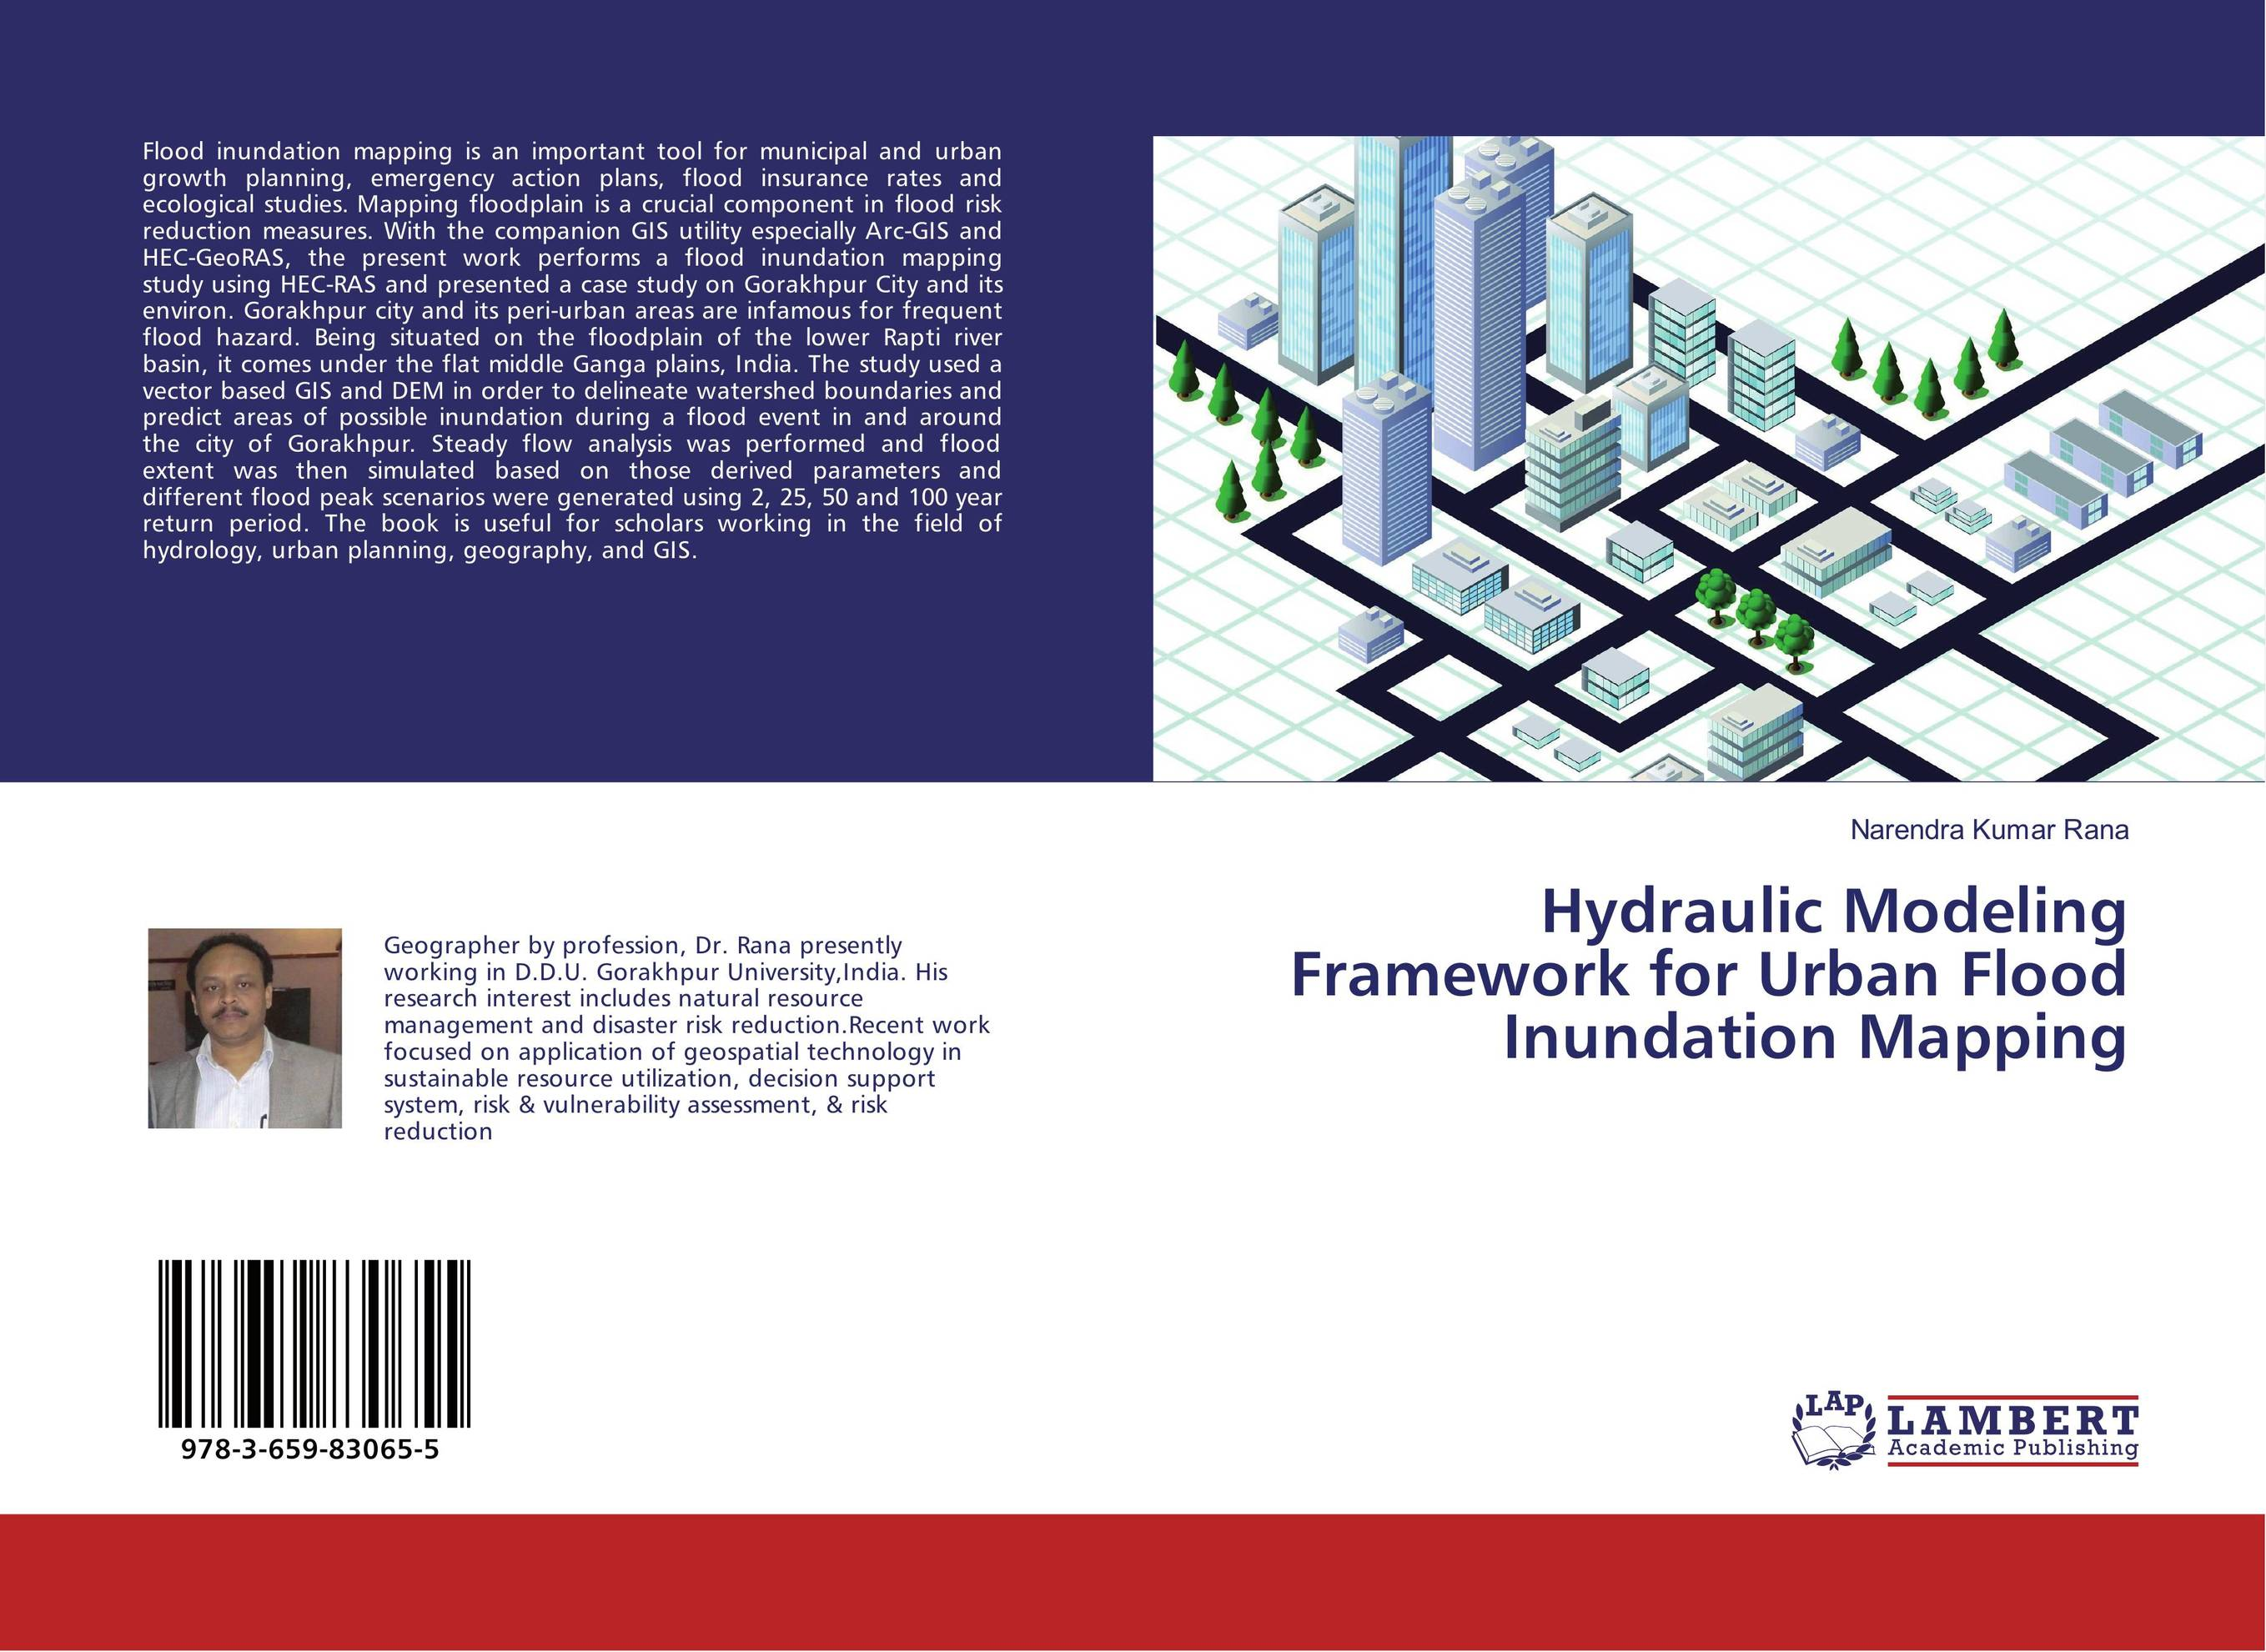 Hydraulic Modeling Framework for Urban Flood Inundation Mapping